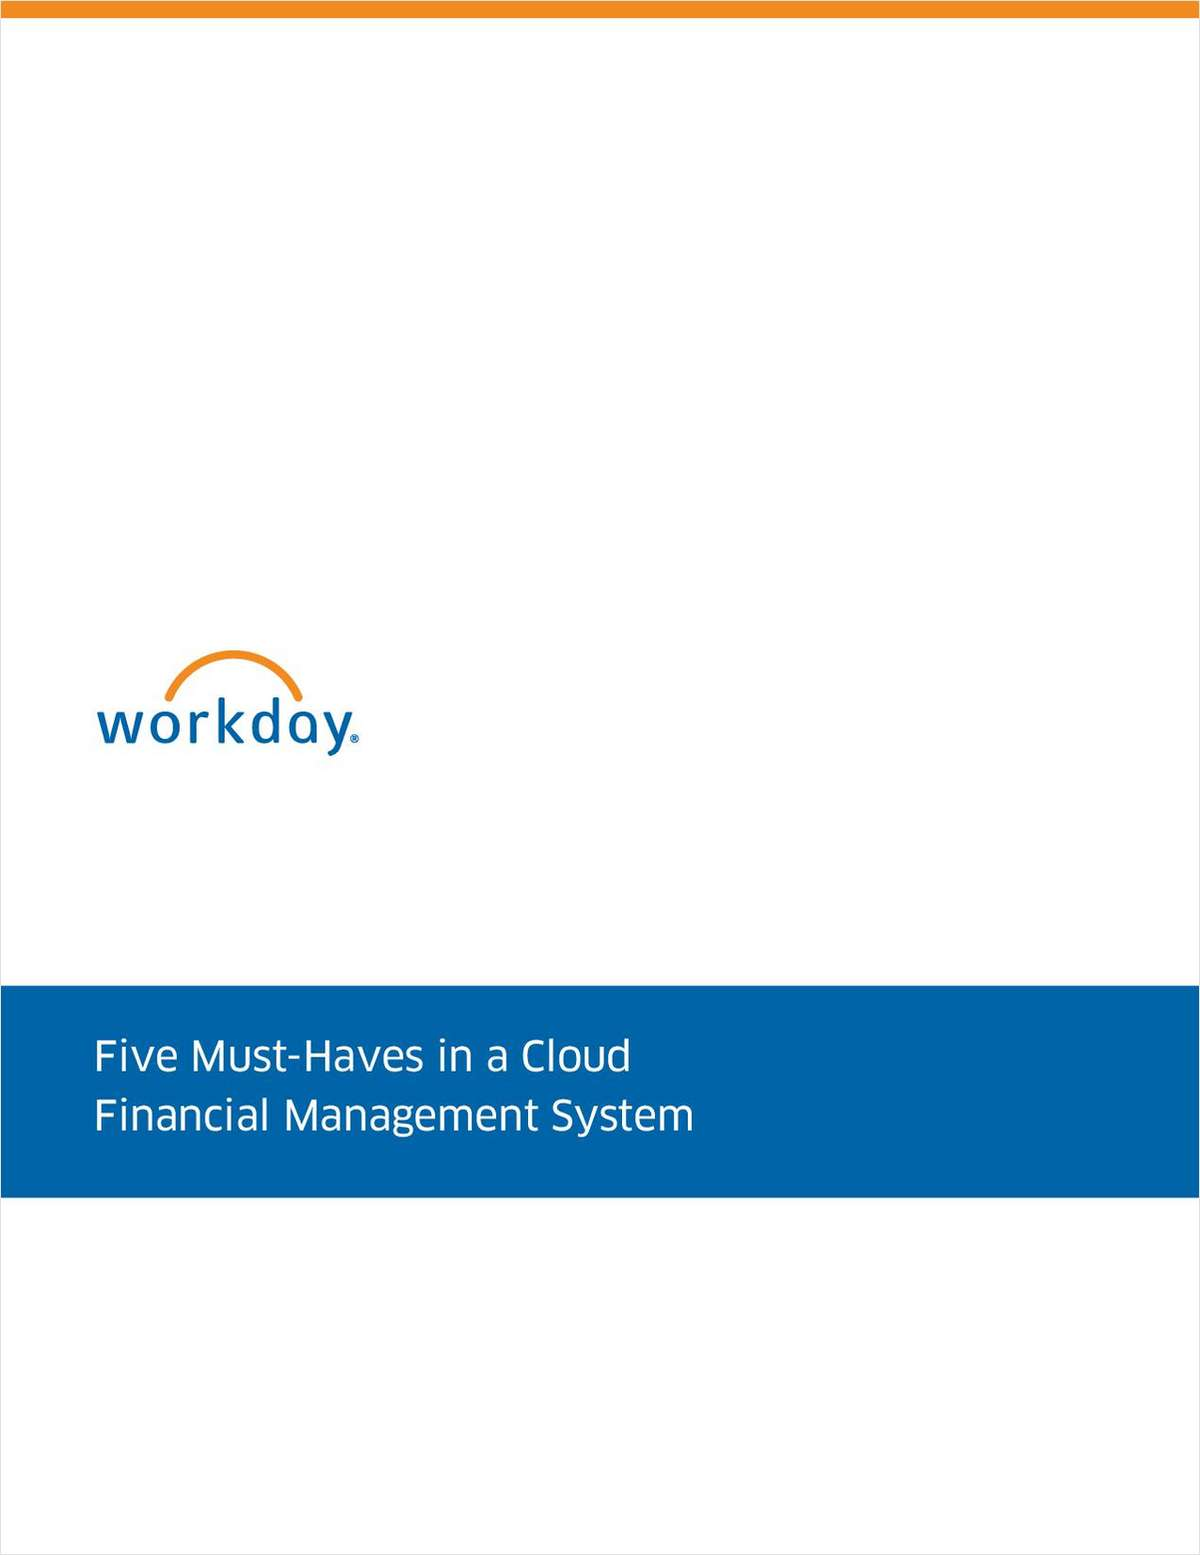 5 Must-Haves in a Financial Management System